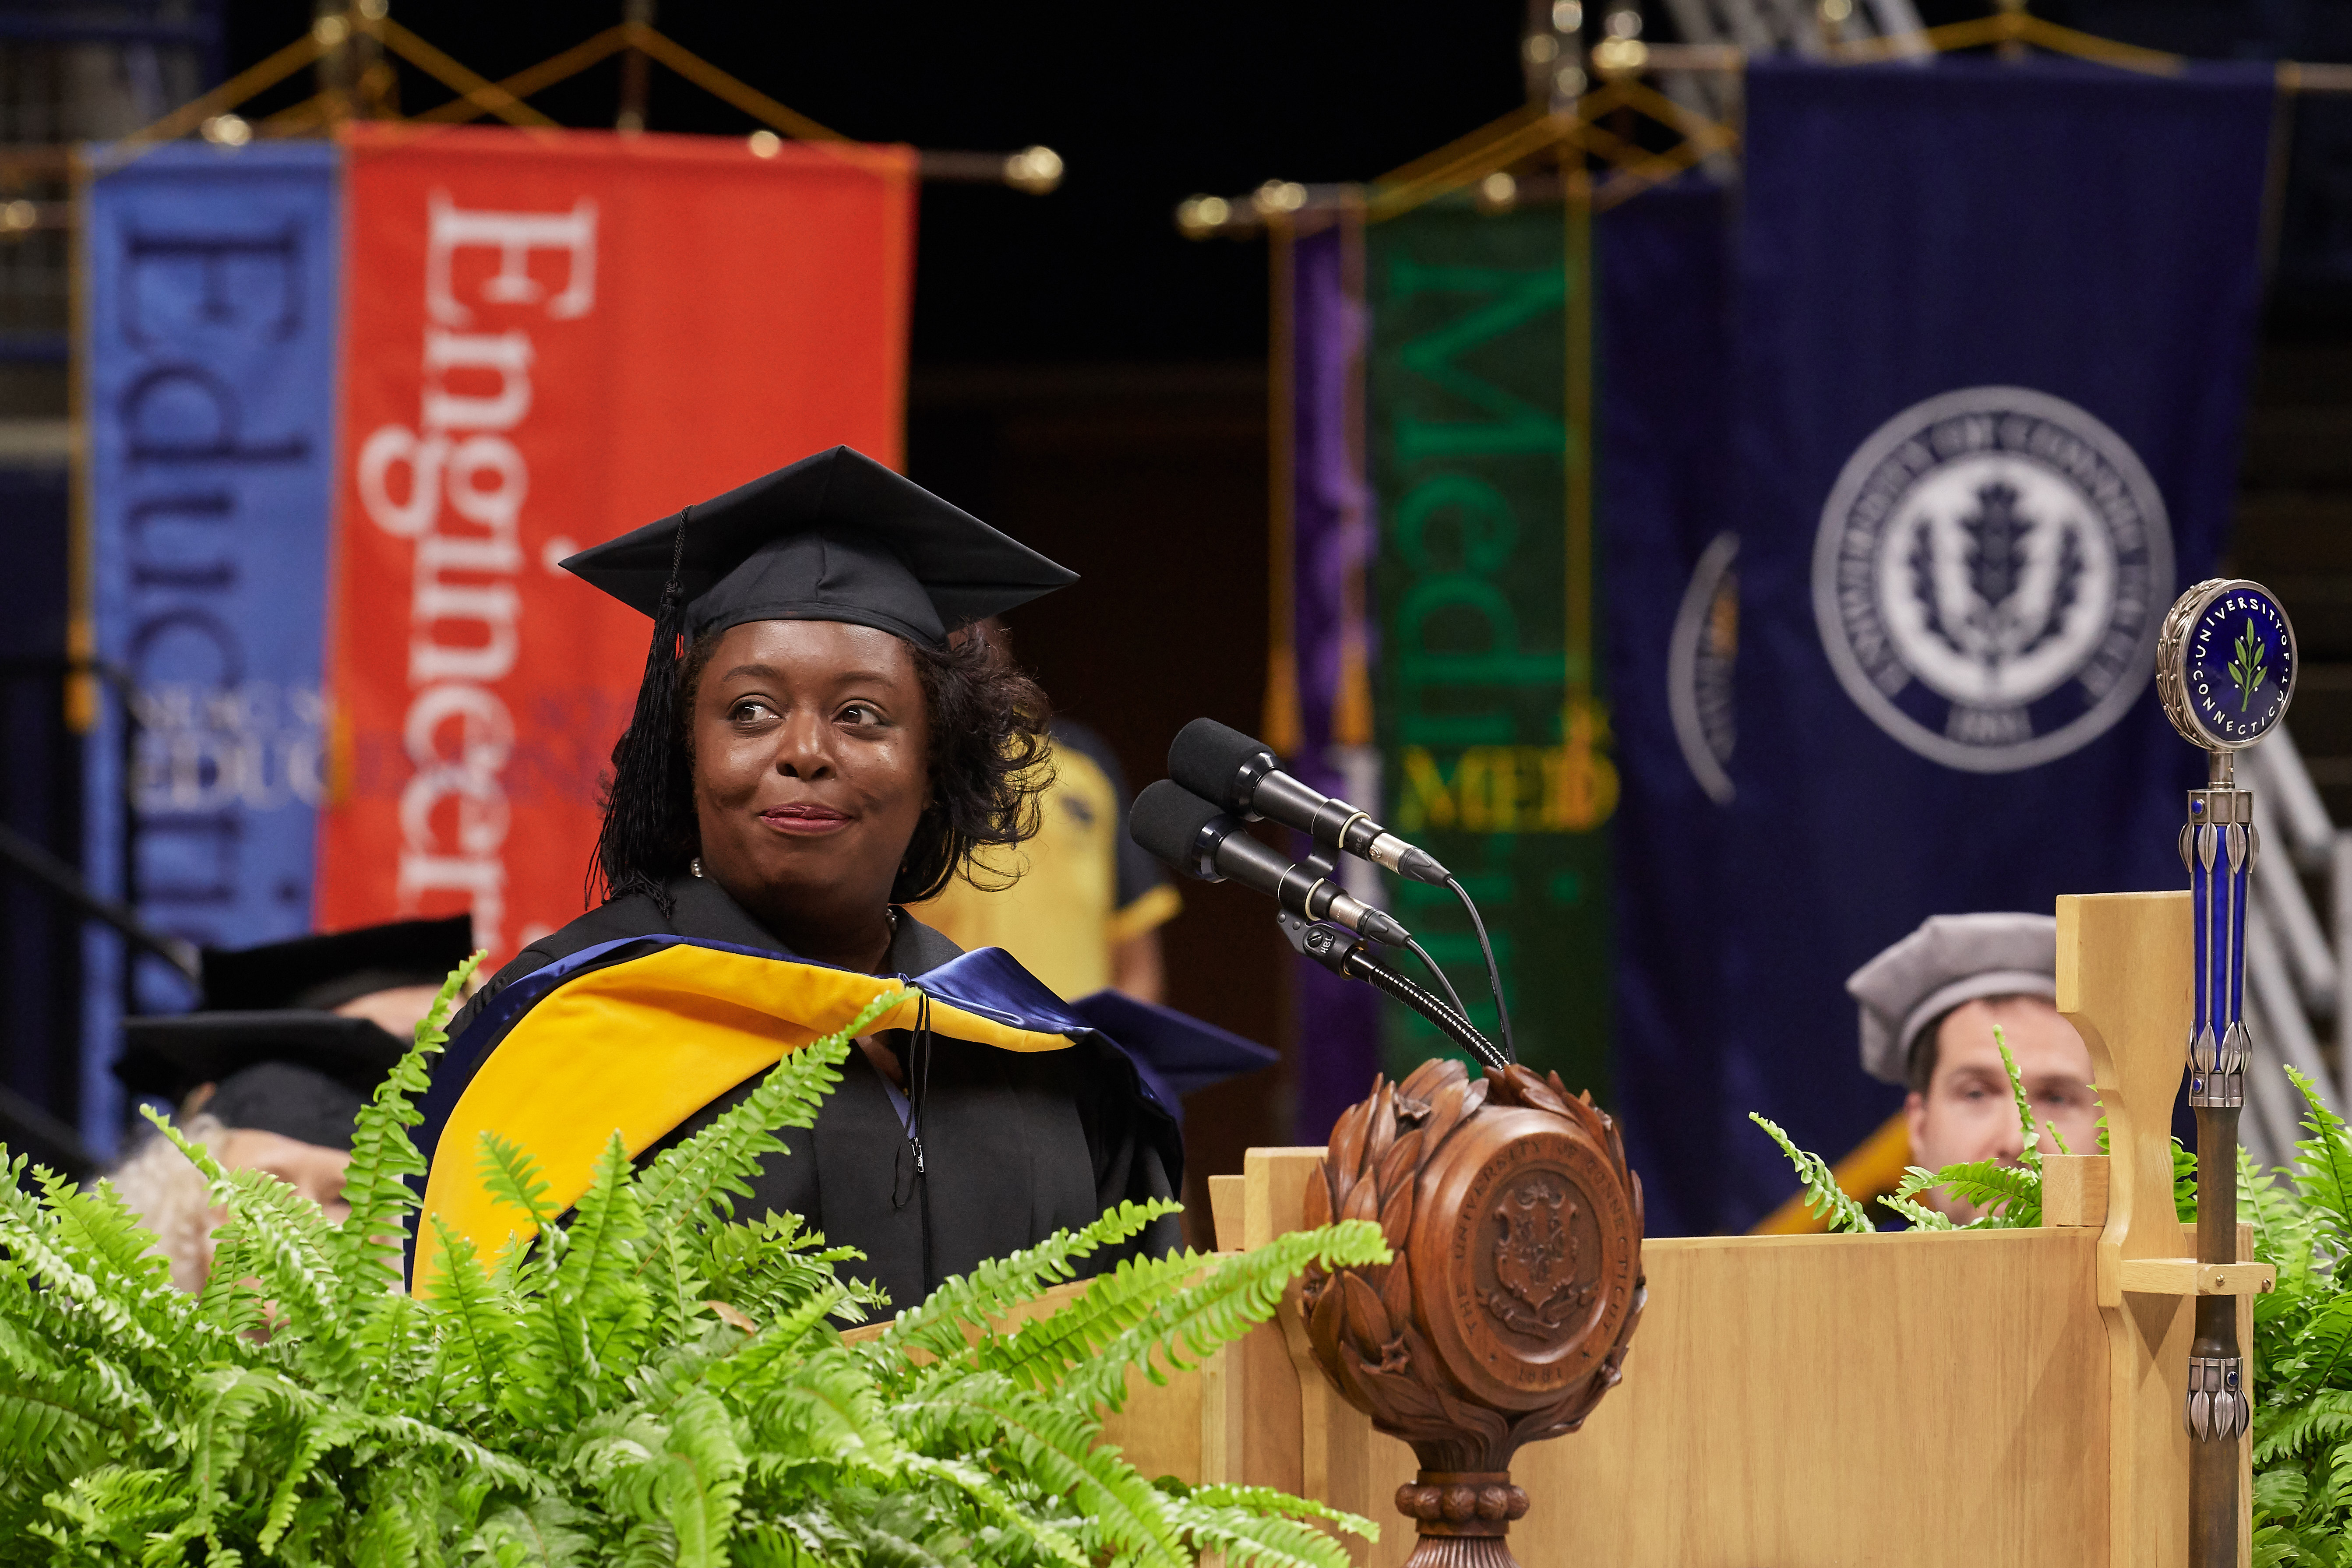 Kimberly Bryant, founder and executive director of Black Girls Code, gives the address at the School of Engineering Commencement ceremony at Gampel Pavilion on May 5, 2018. (Peter Morenus/UConn Photo)